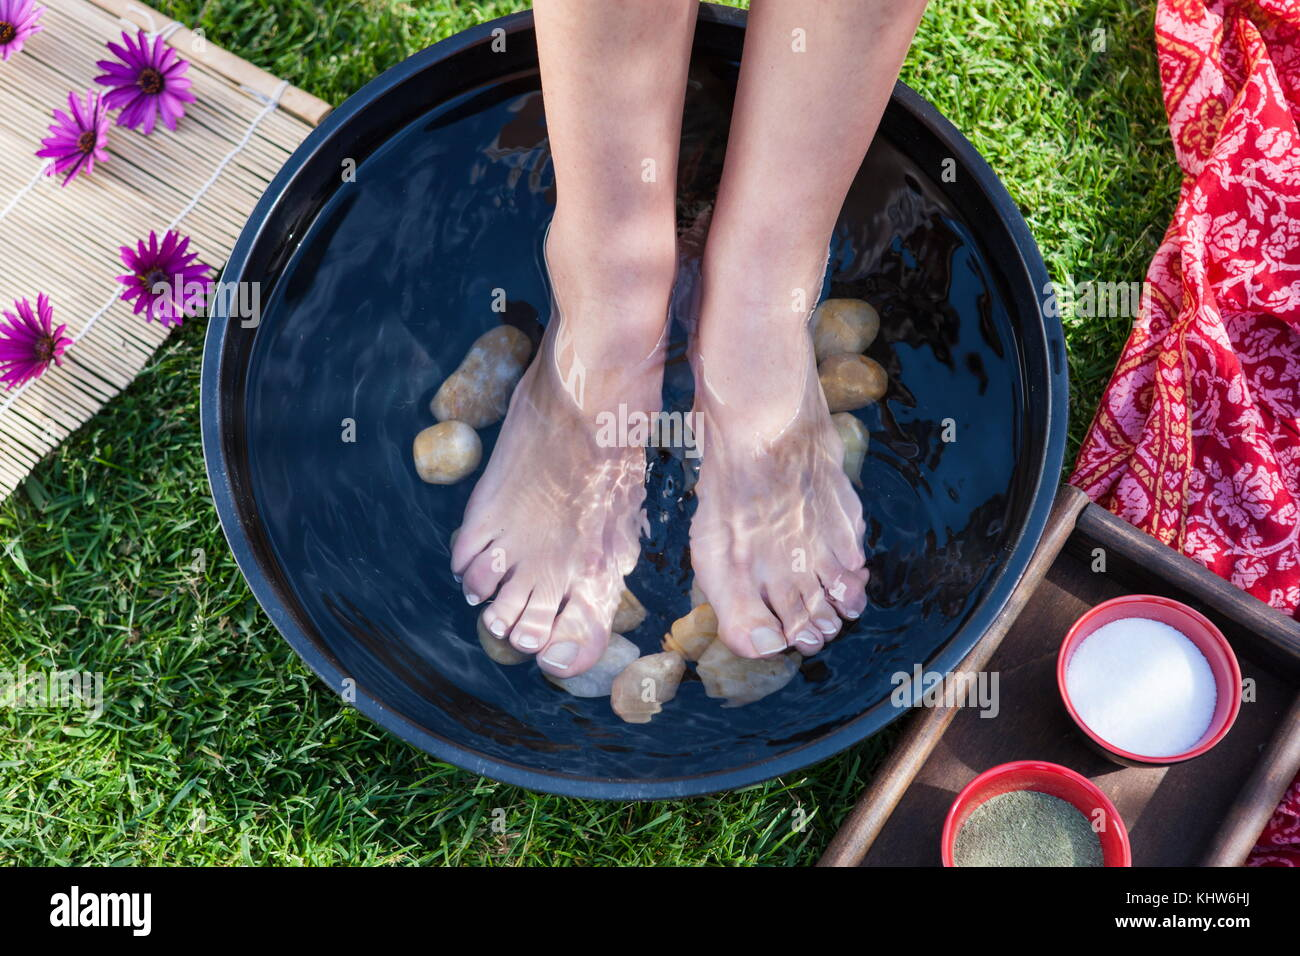 Feet Out Of Bath Stock Photos & Feet Out Of Bath Stock Images - Alamy